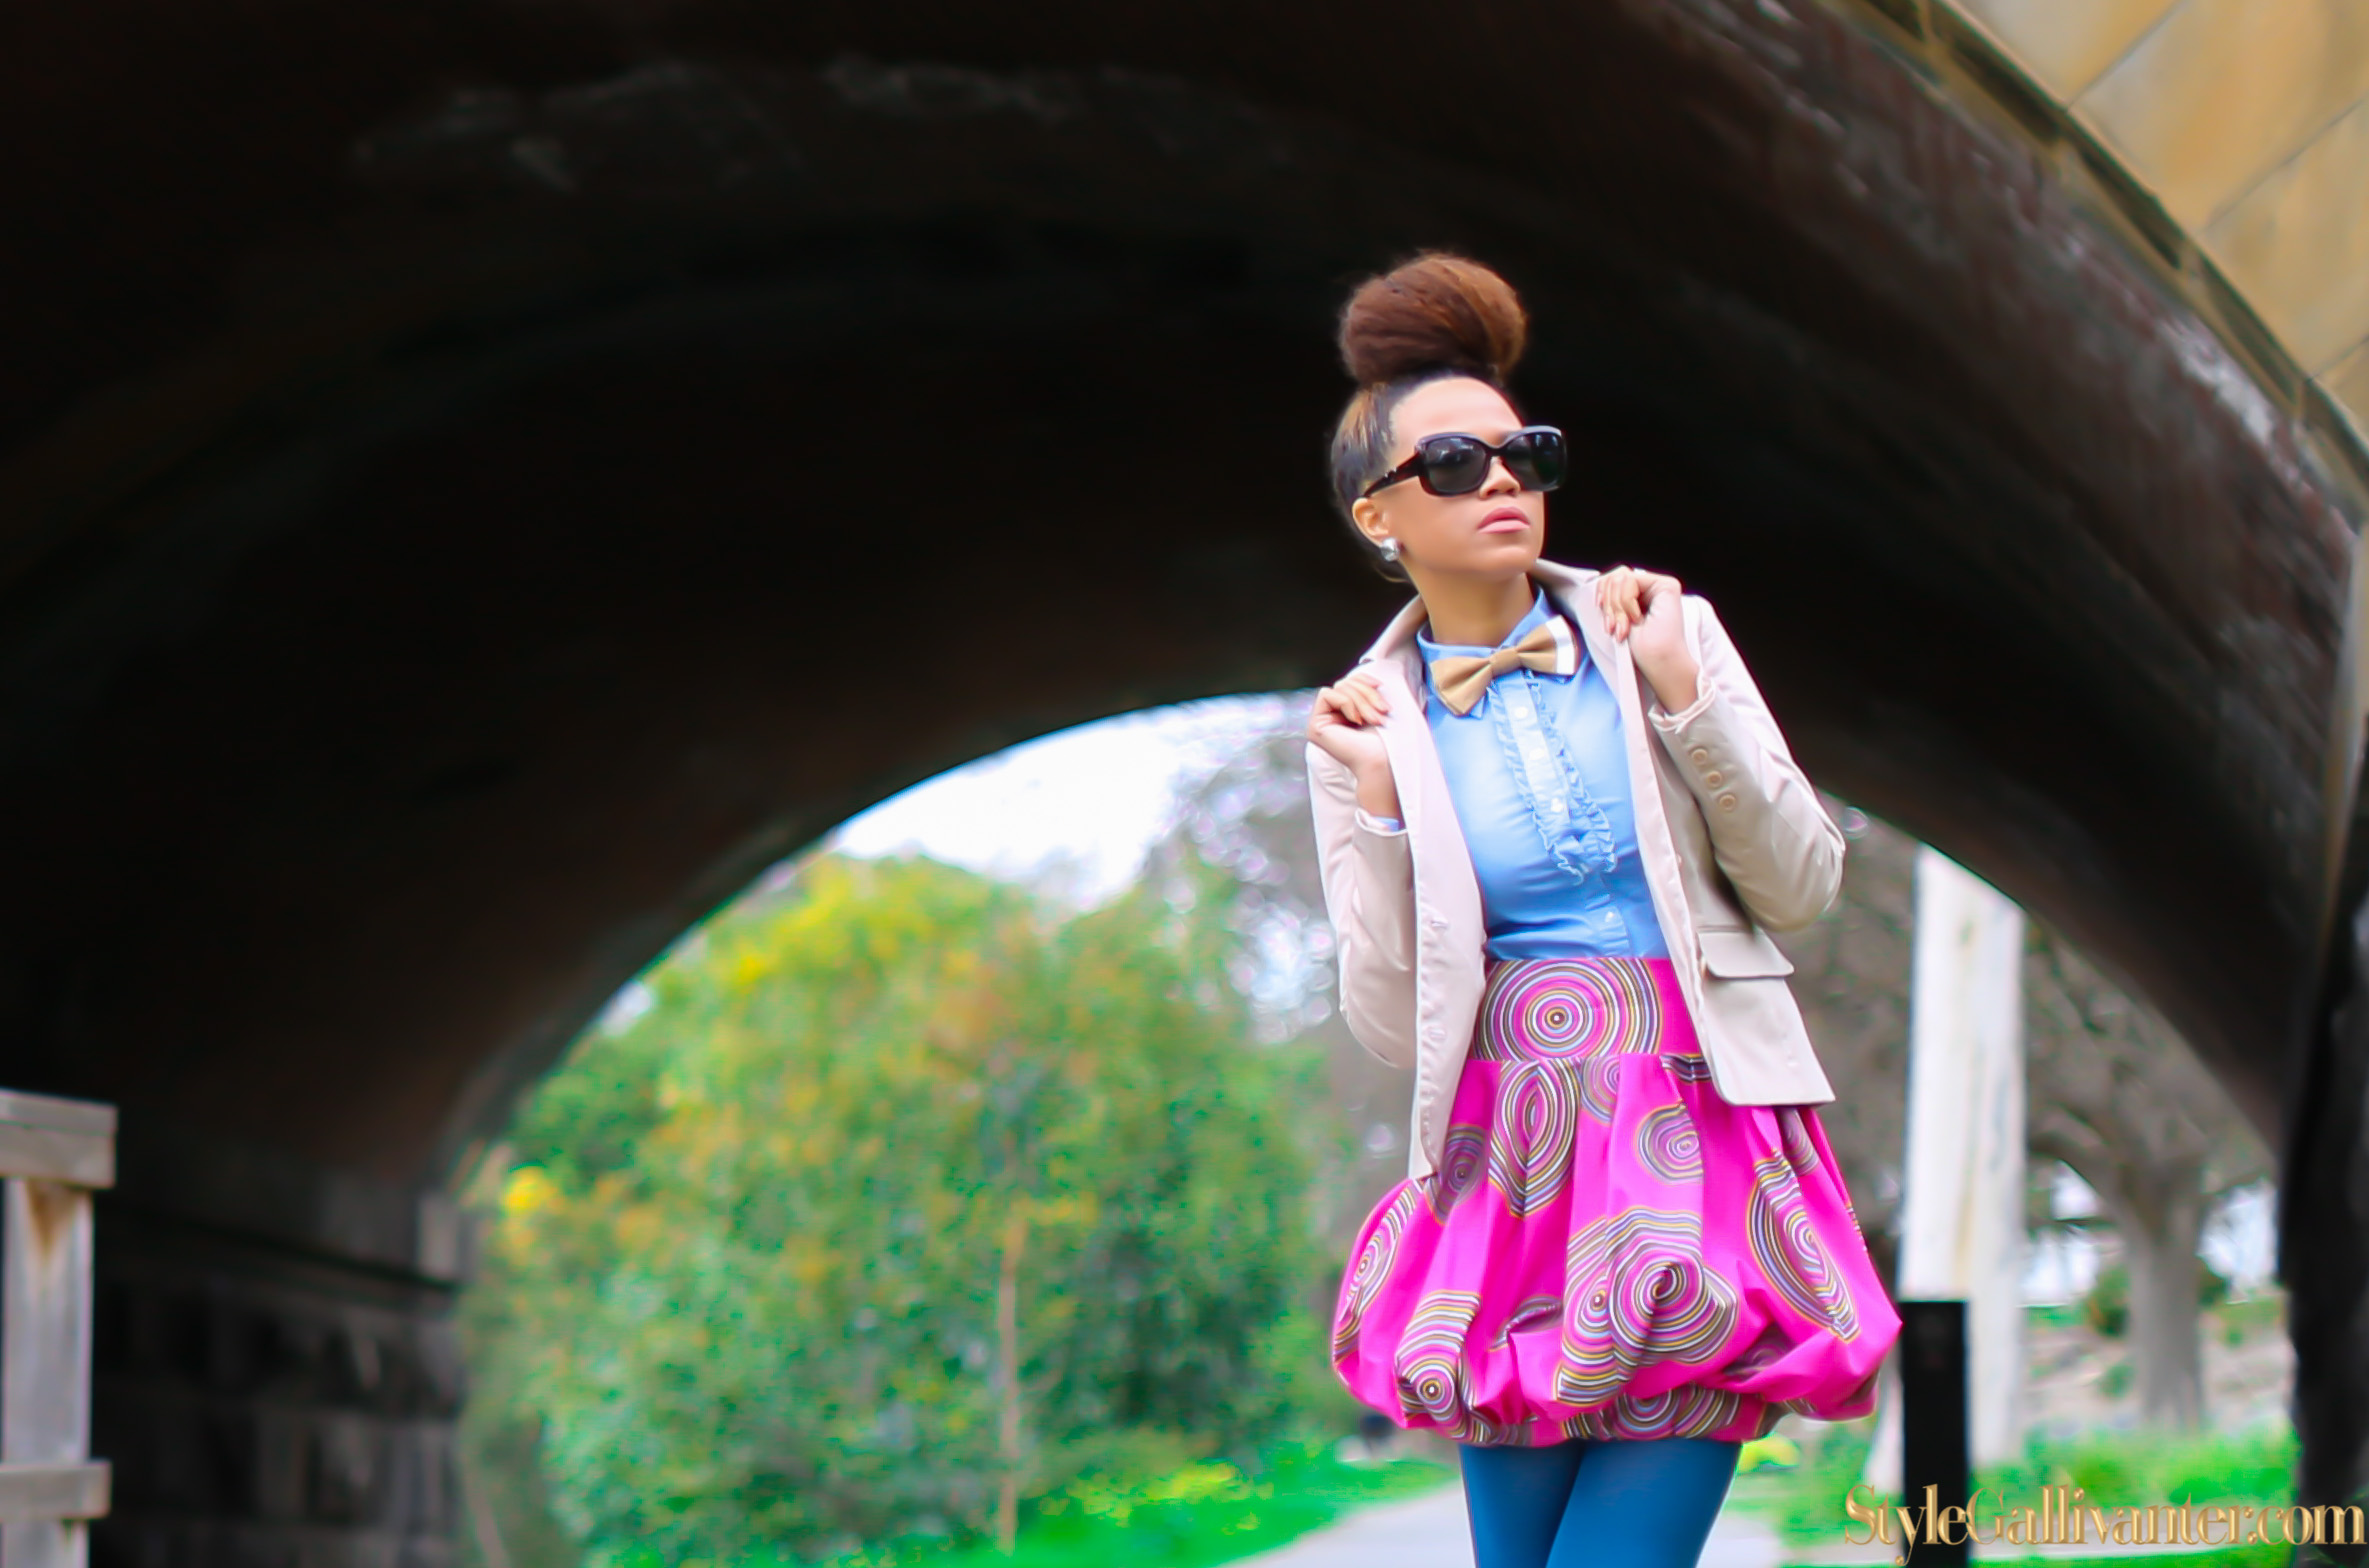 bowtie-editorials_pretty-girl-swag_top-fashion-blogs-africa_best-african-american-fashion-bloggers_coloured-stockings_colored-tights_pink-bubble-skirt_barbie-editorial_princess-editorial_cute-japanese-fashion-editorial-2